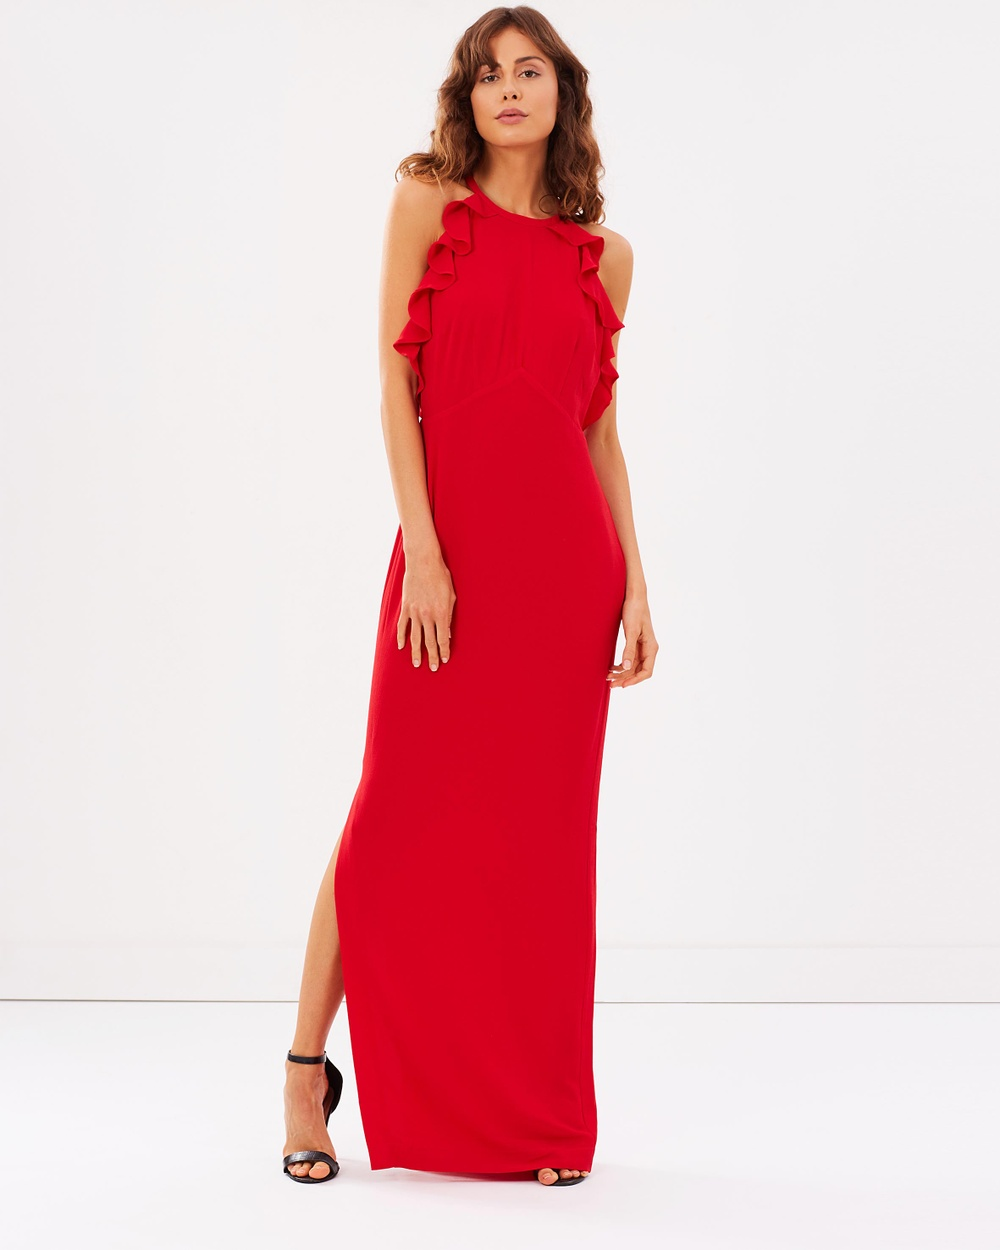 Whistles Sonia Frill Maxi Dress Dresses Red Sonia Frill Maxi Dress